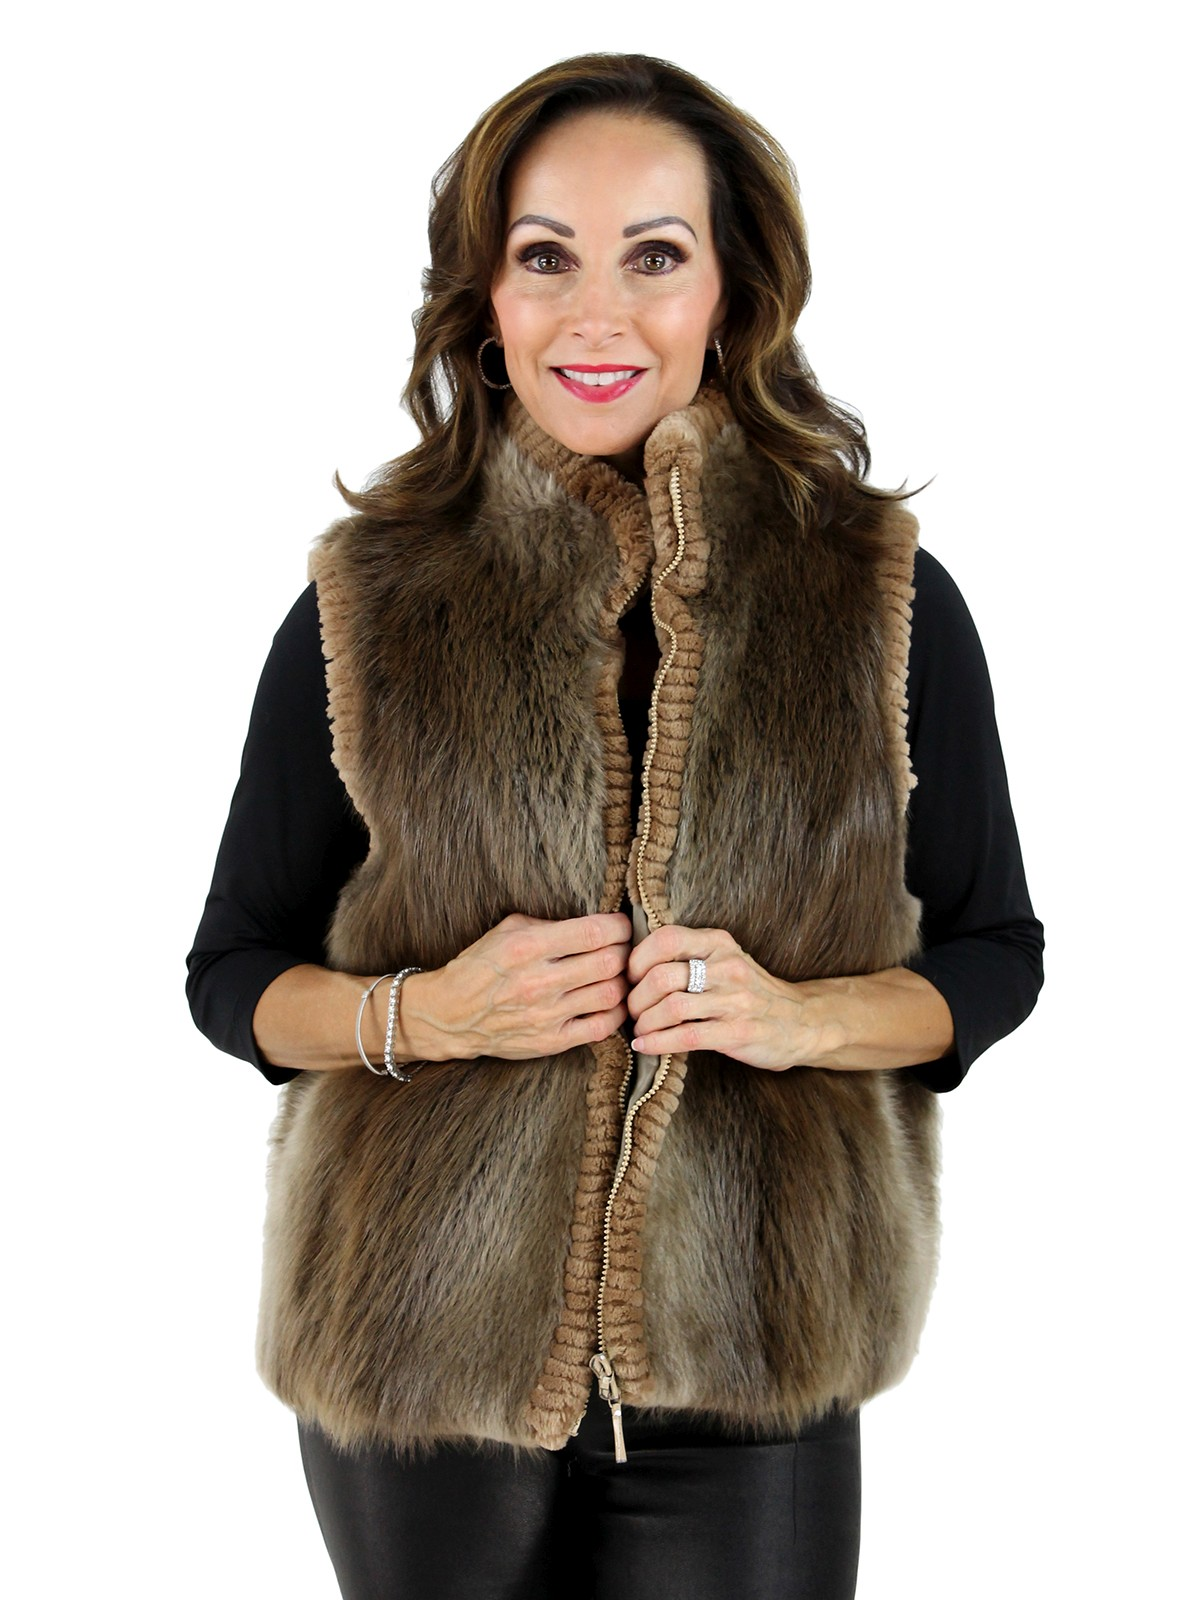 Woman's Blond Long Hair Beaver Fur Vest